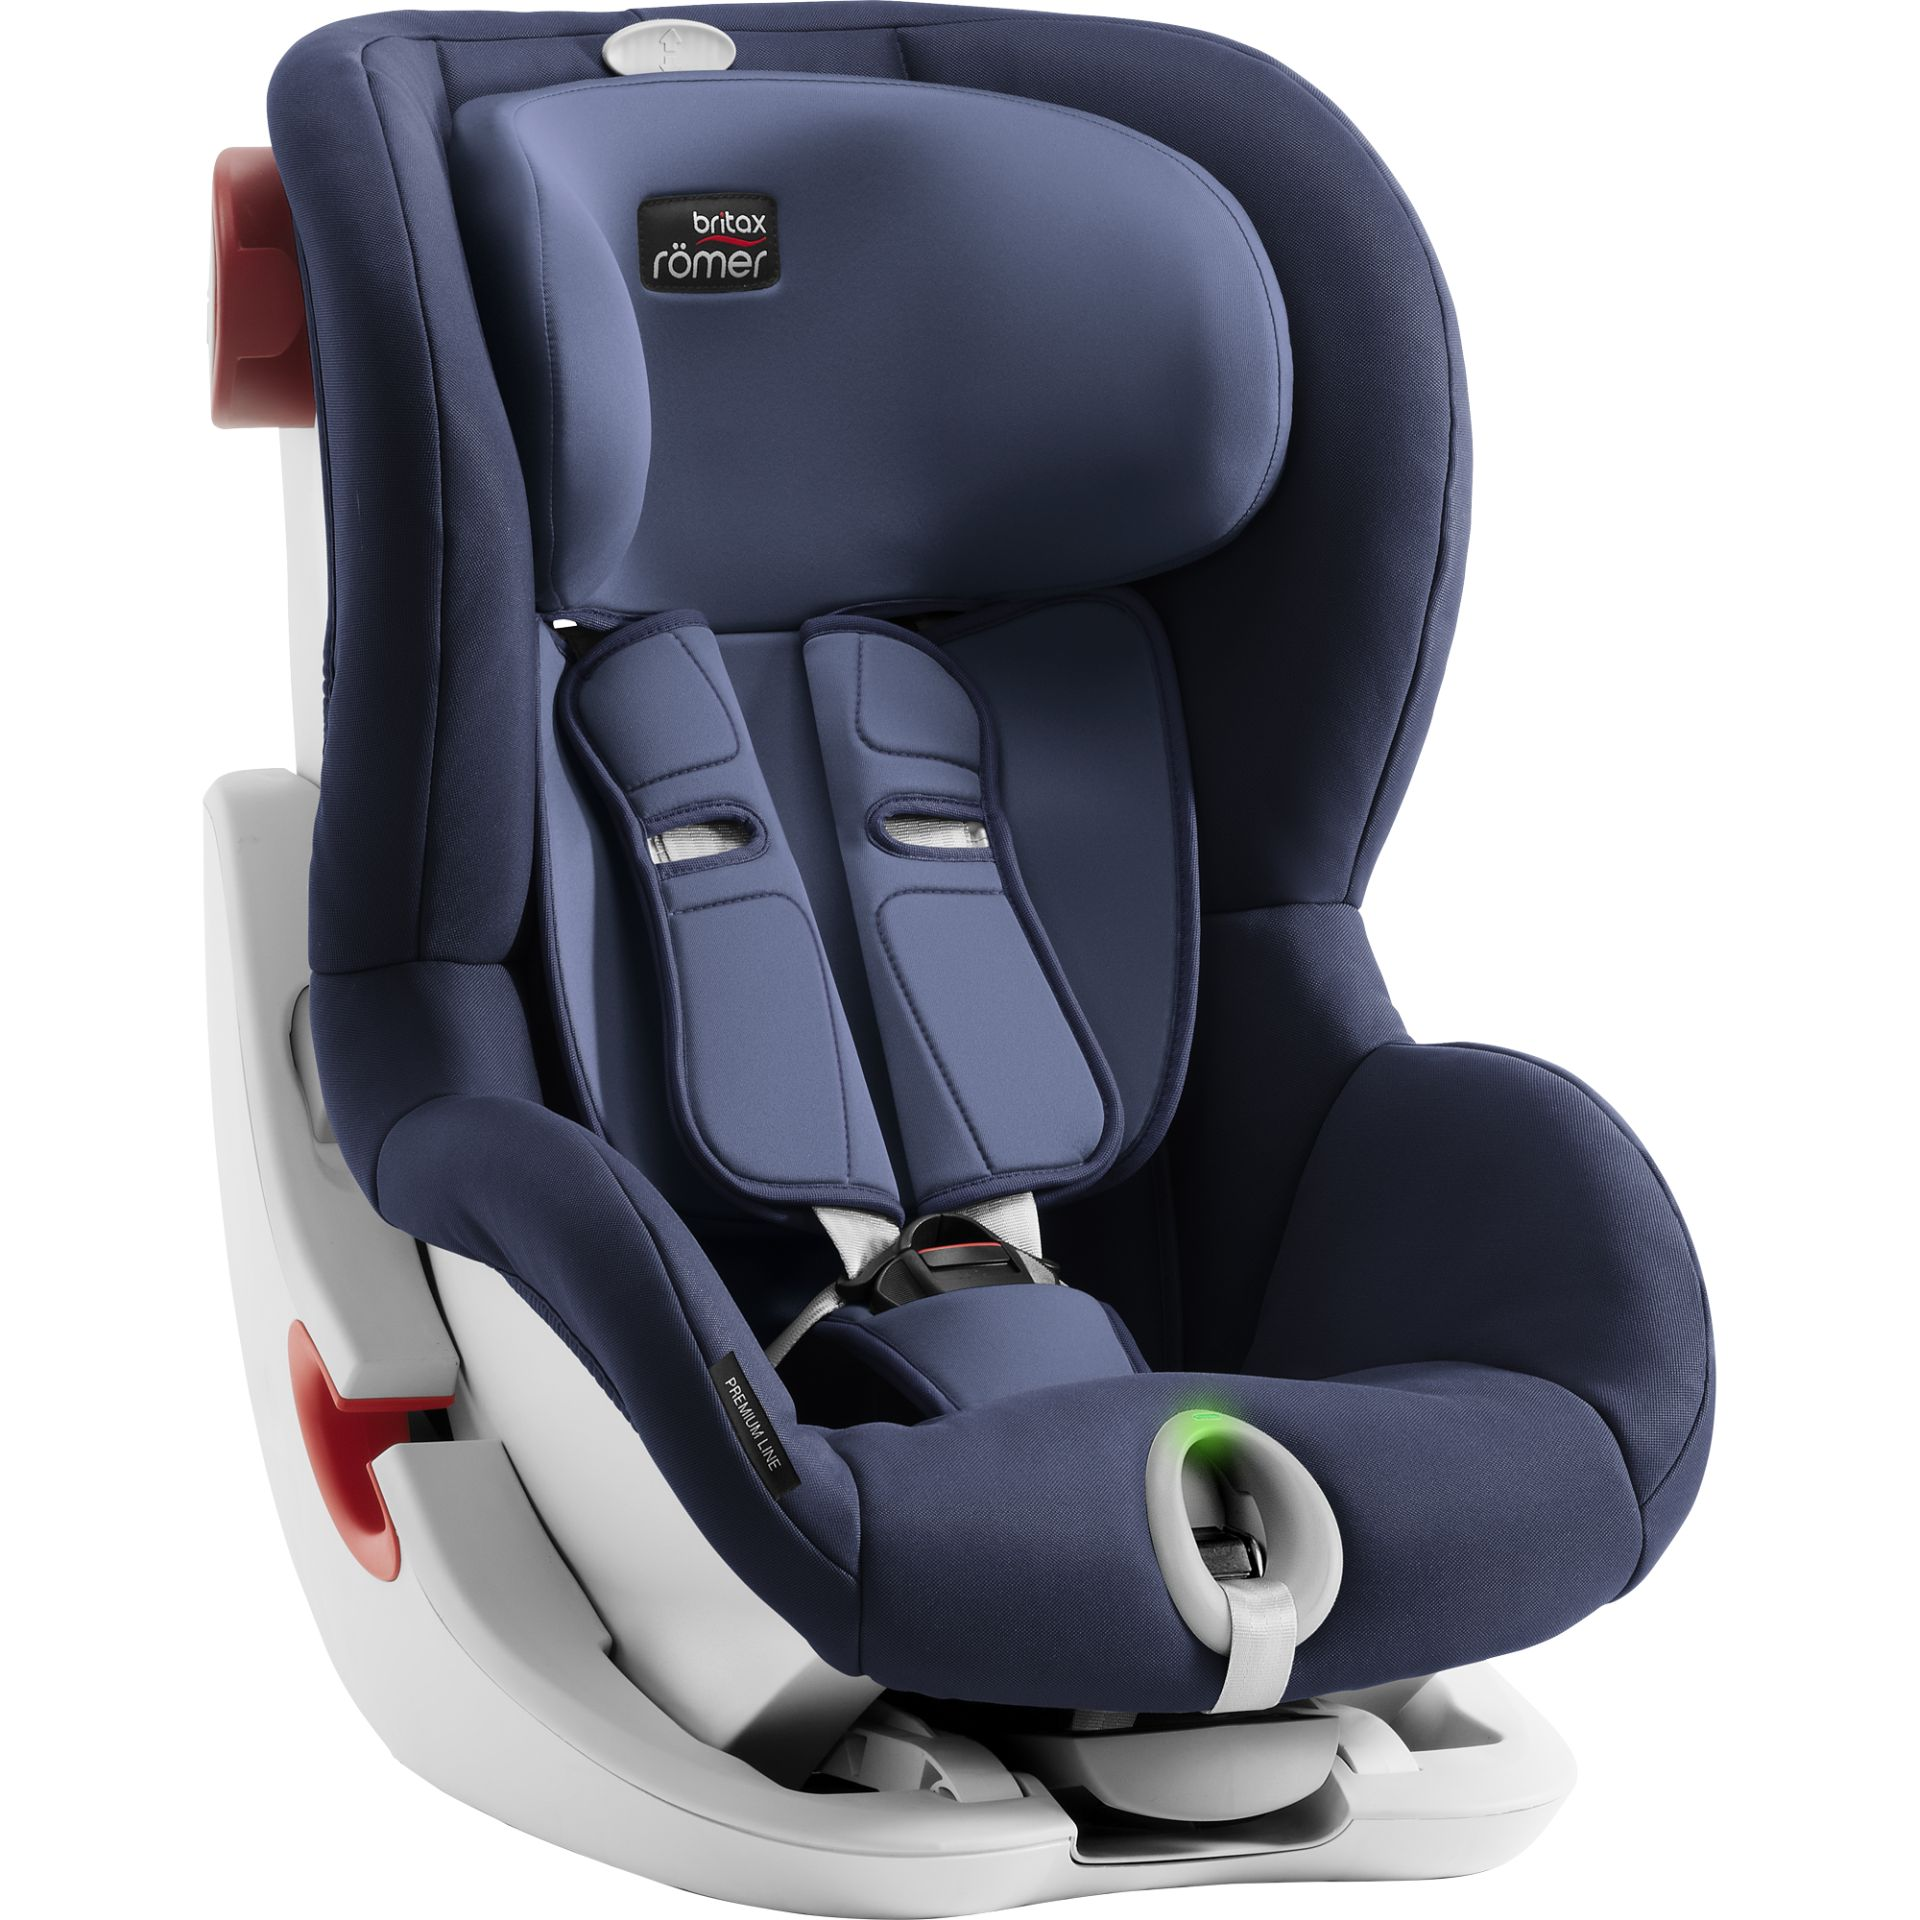 britax r mer child car seat king ii ls 2018 moonlight blue buy at kidsroom car seats. Black Bedroom Furniture Sets. Home Design Ideas